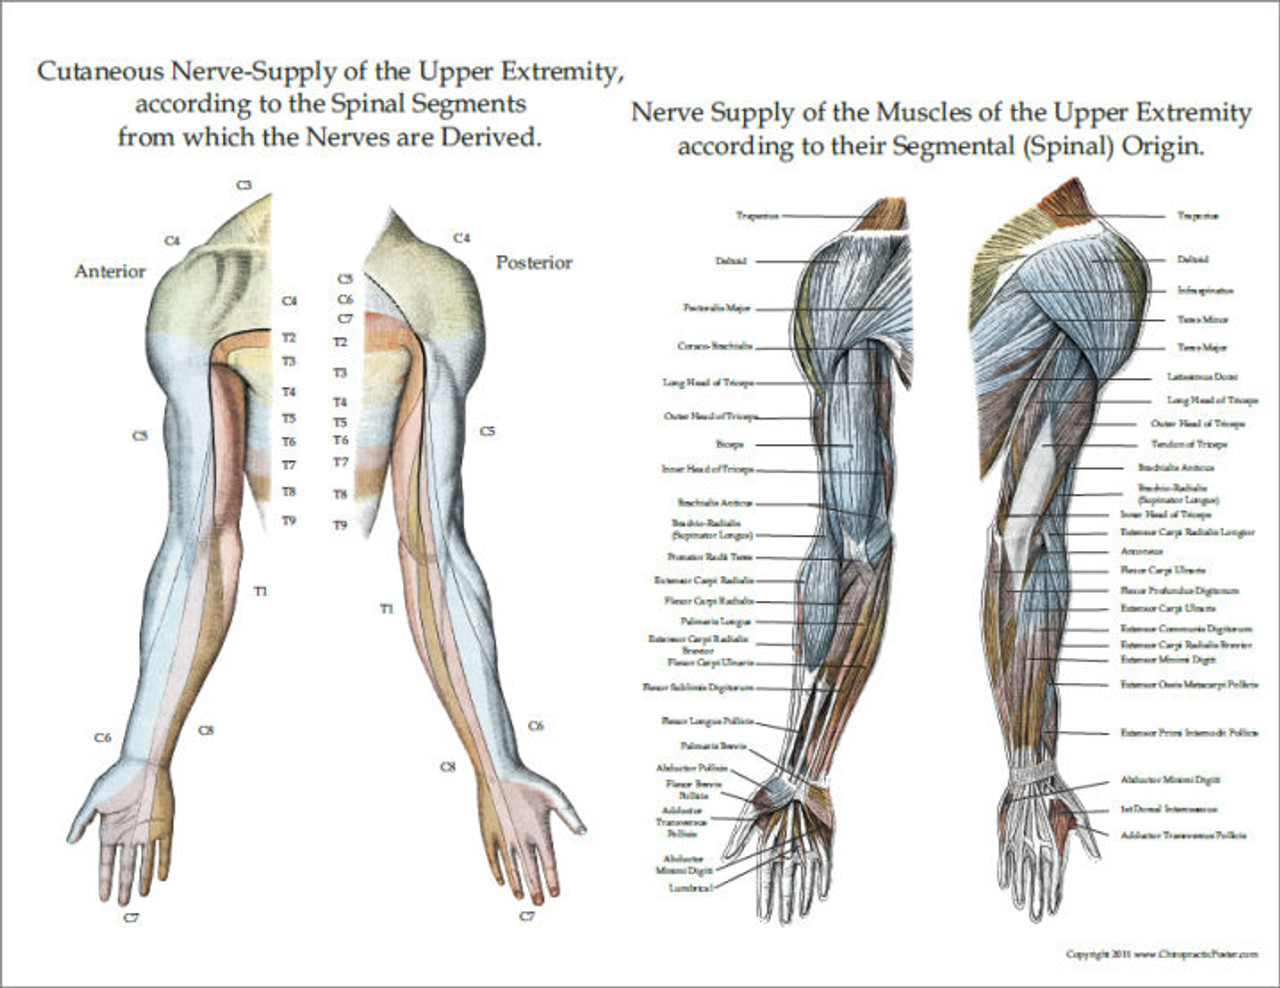 lower extremities diagram nerve innervation of upper and lower extremities posters  3  upper and lower extremities posters